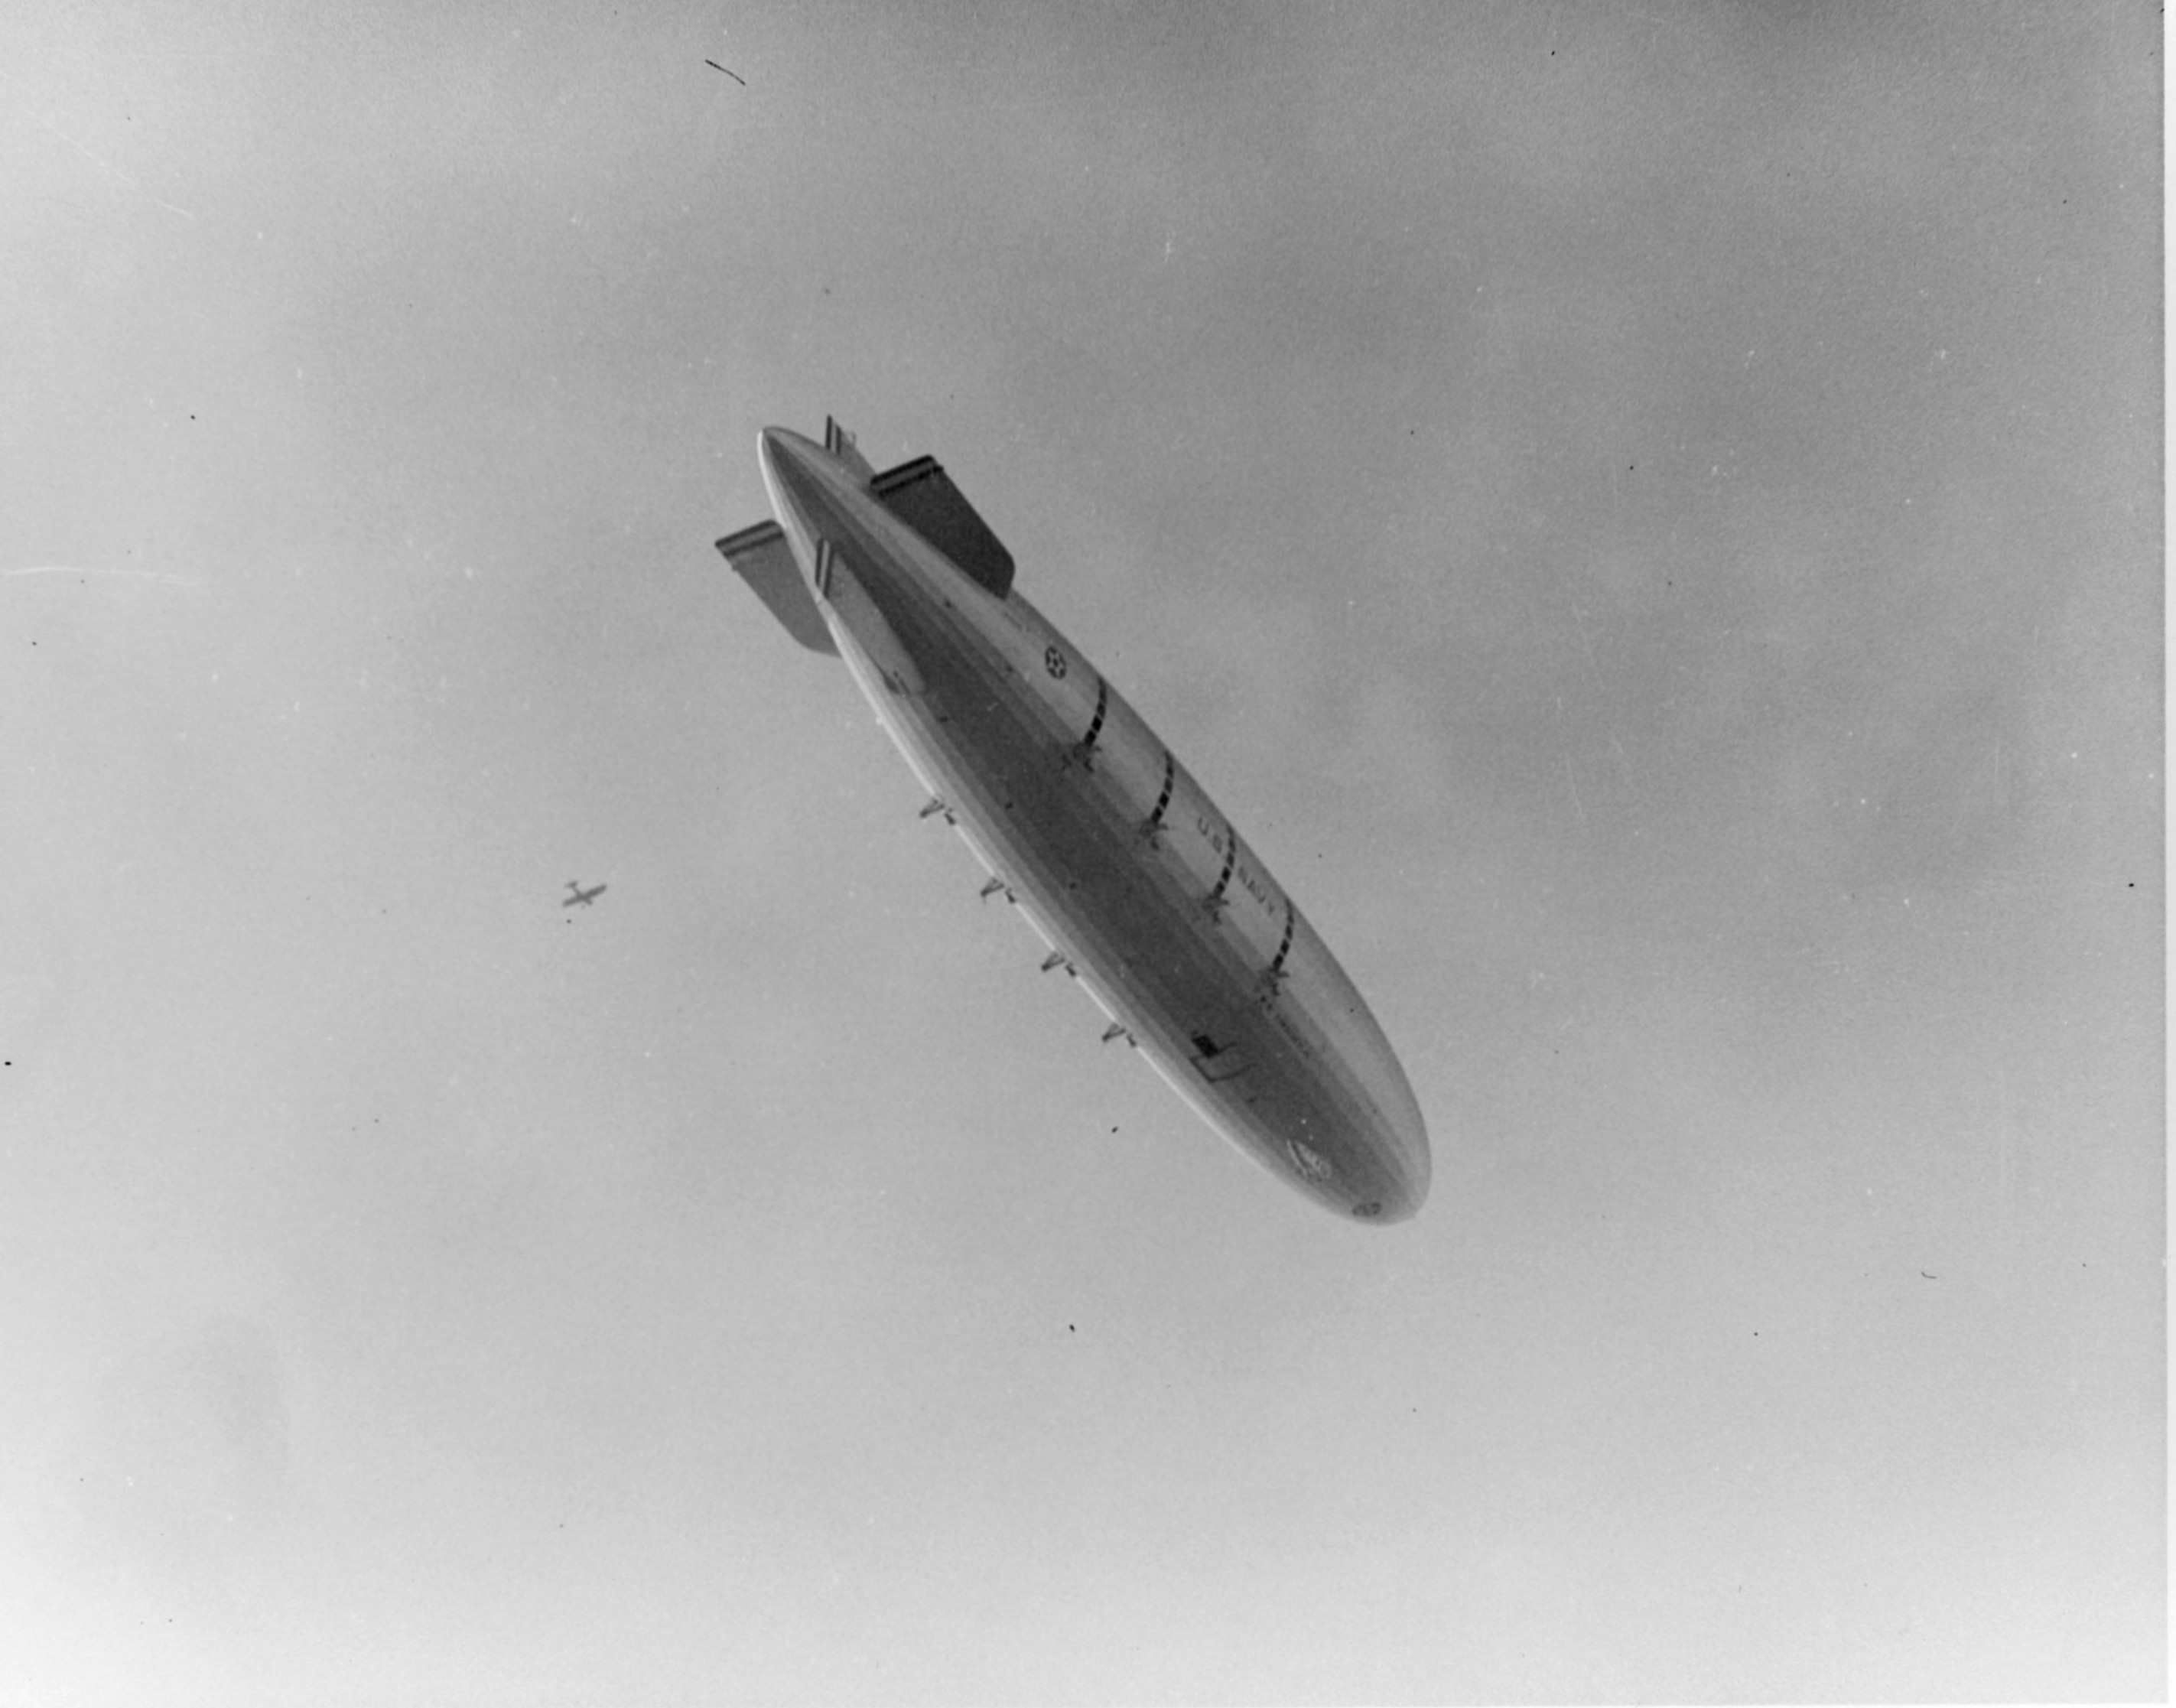 USS Macon (ZRS-5) over San Diego Harbor on Feb. 9, 1934.